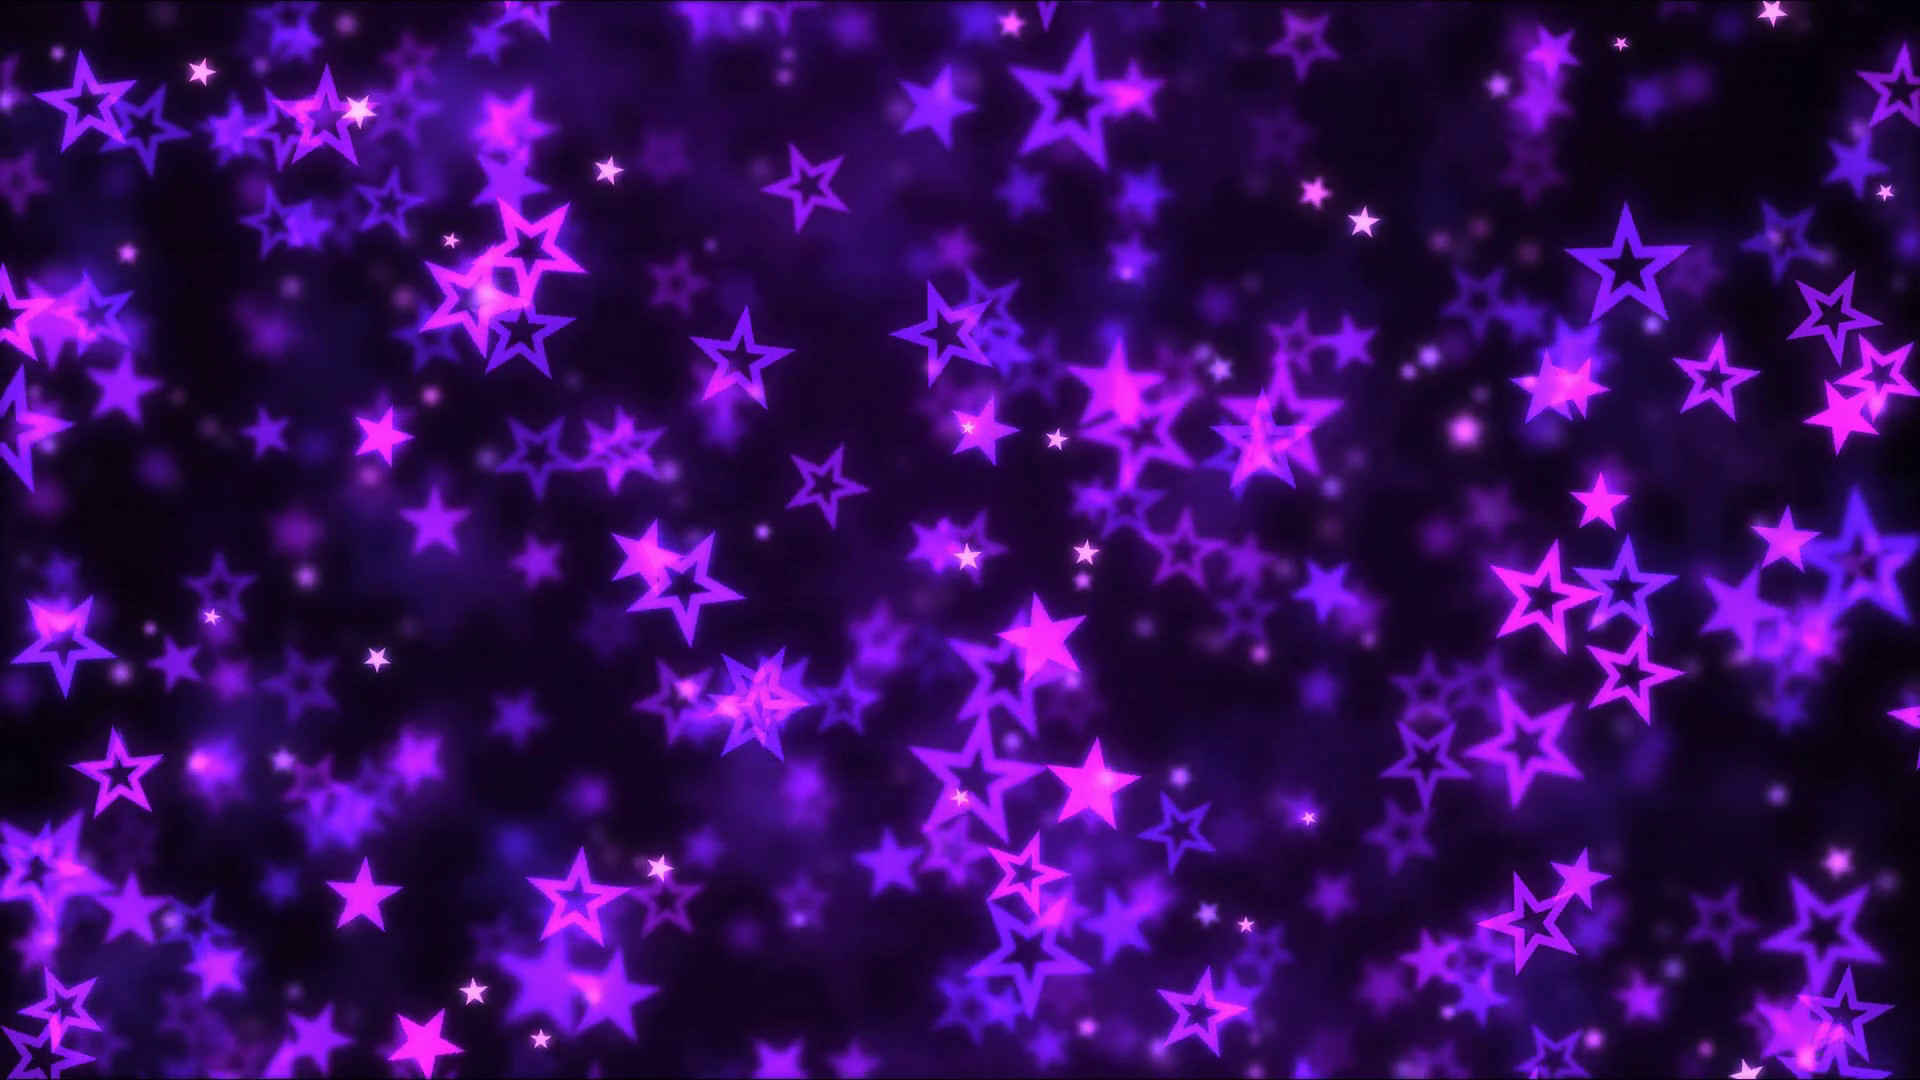 Res: 1920x1080, Falling Star Shapes Background Animation - Loop Purple Motion Background -  Videoblocks